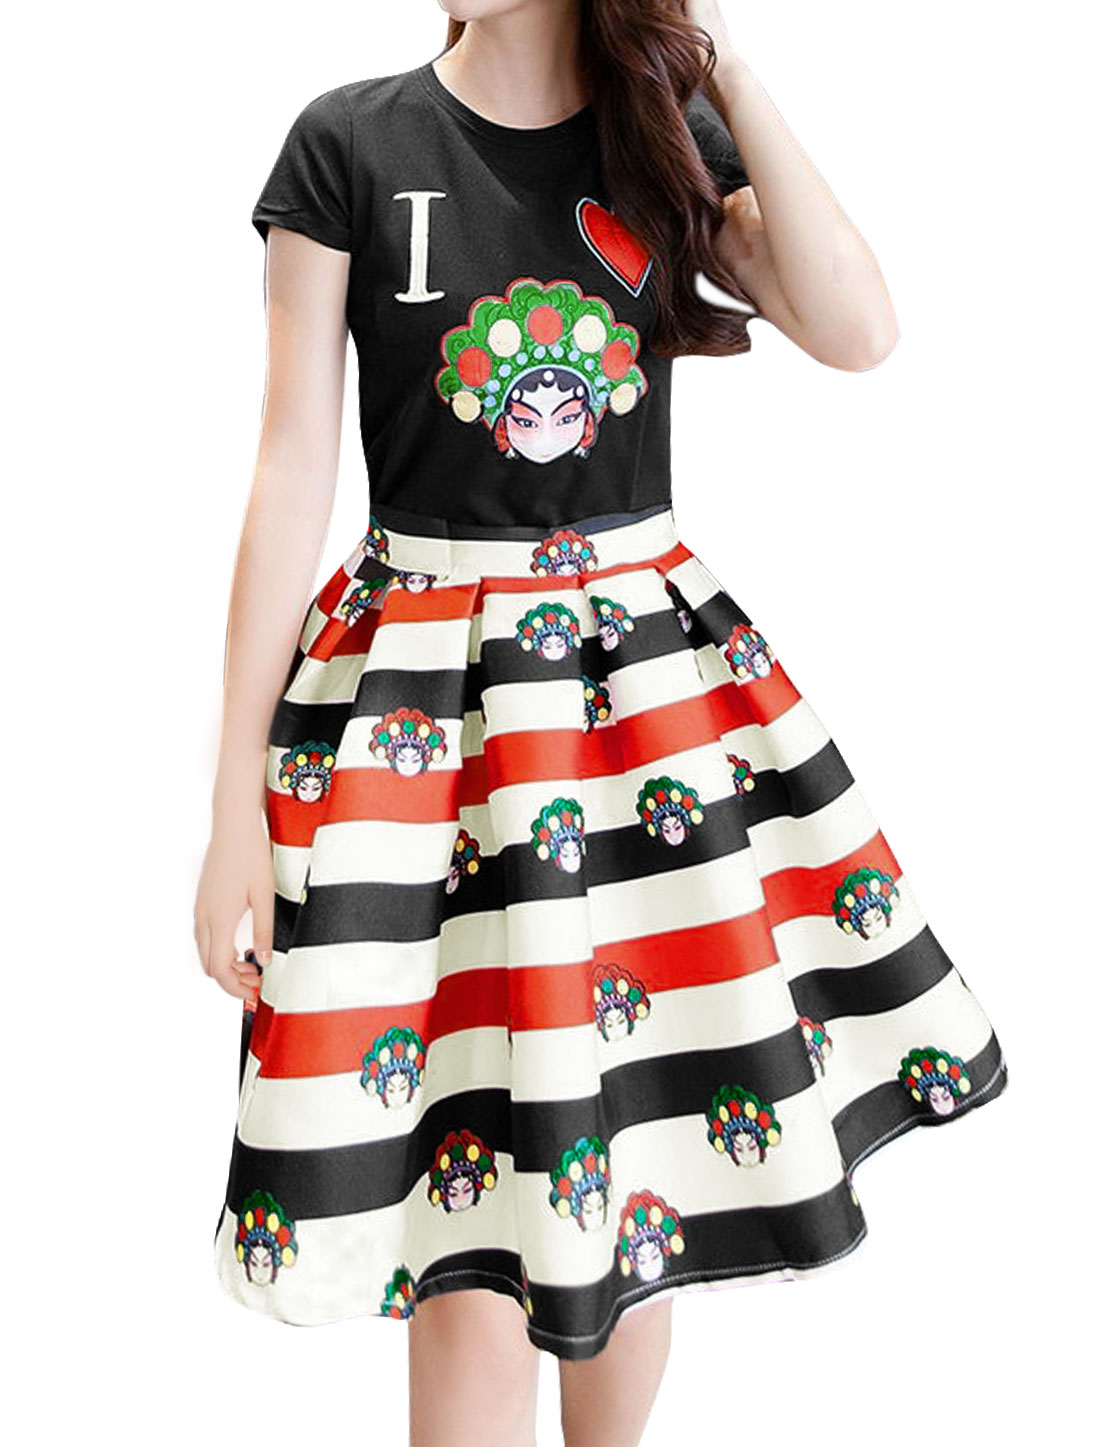 Lady Opera Facial Makeup T-Shirt w Stripes Full Skirt Sets Black White M